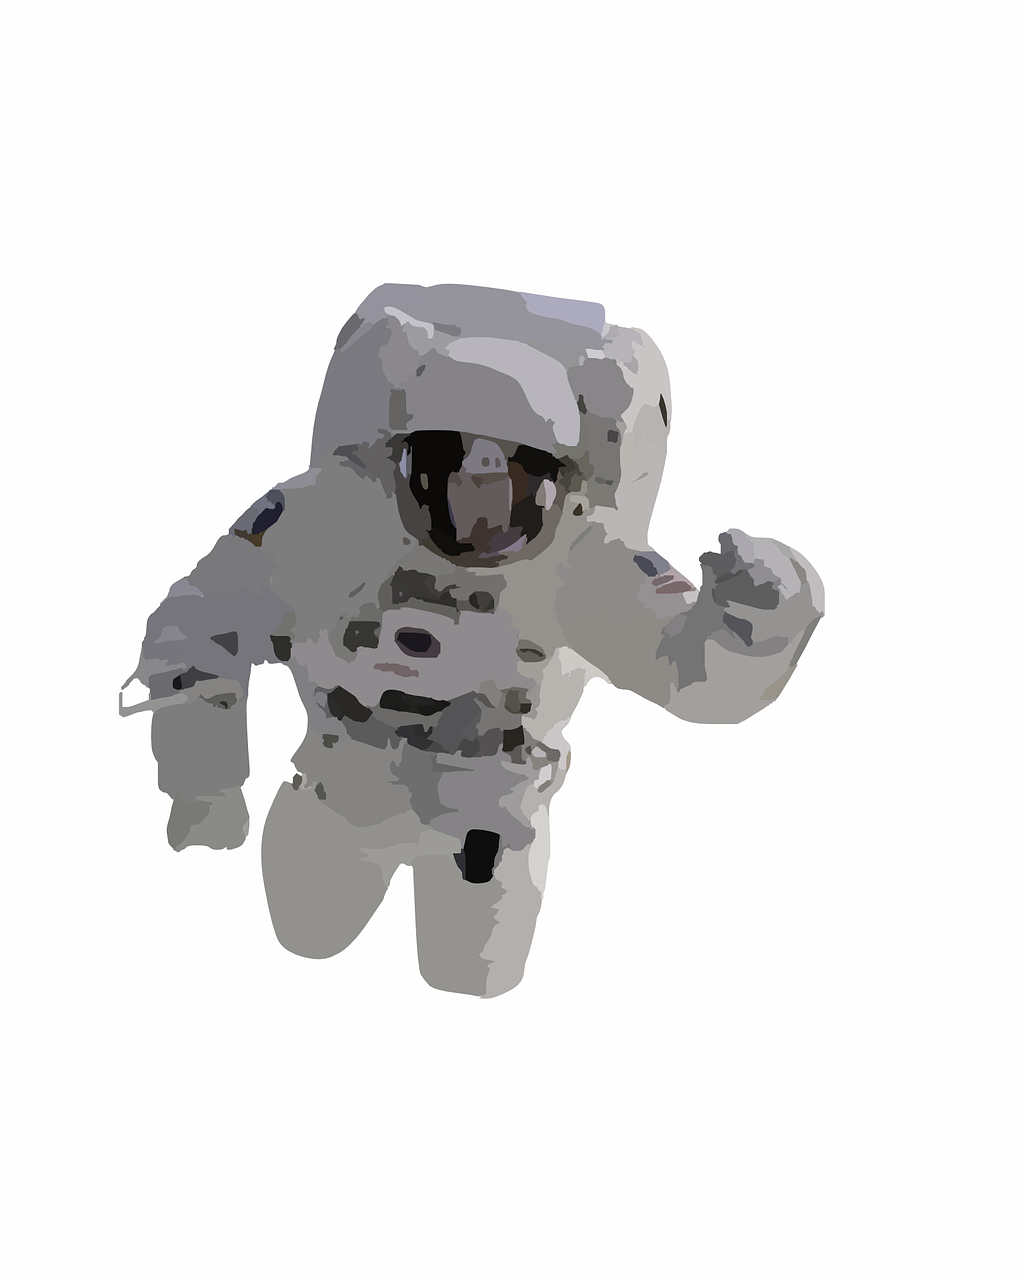 astronaut spaceman spacesuit free photo